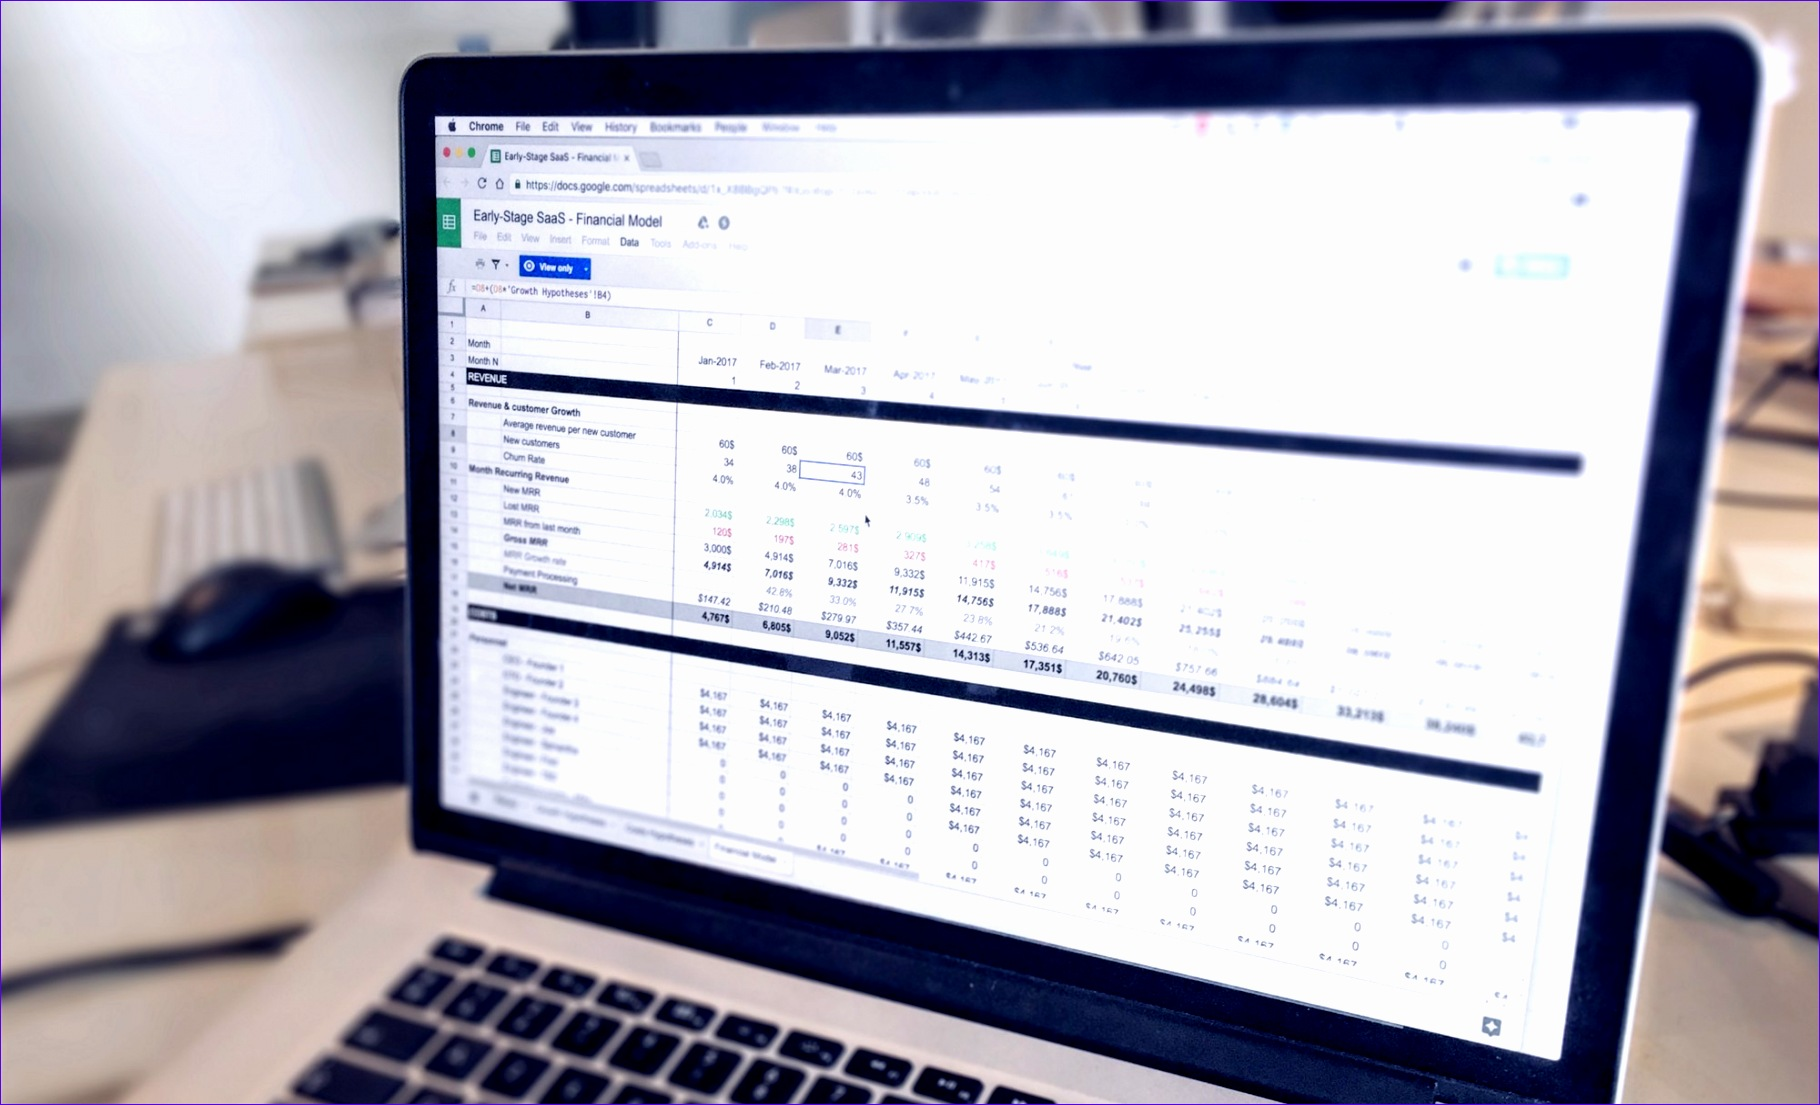 Bug Tracking Excel Template Ejtca Lovely Saas Financial Model Simple Template for Early Stage Startups